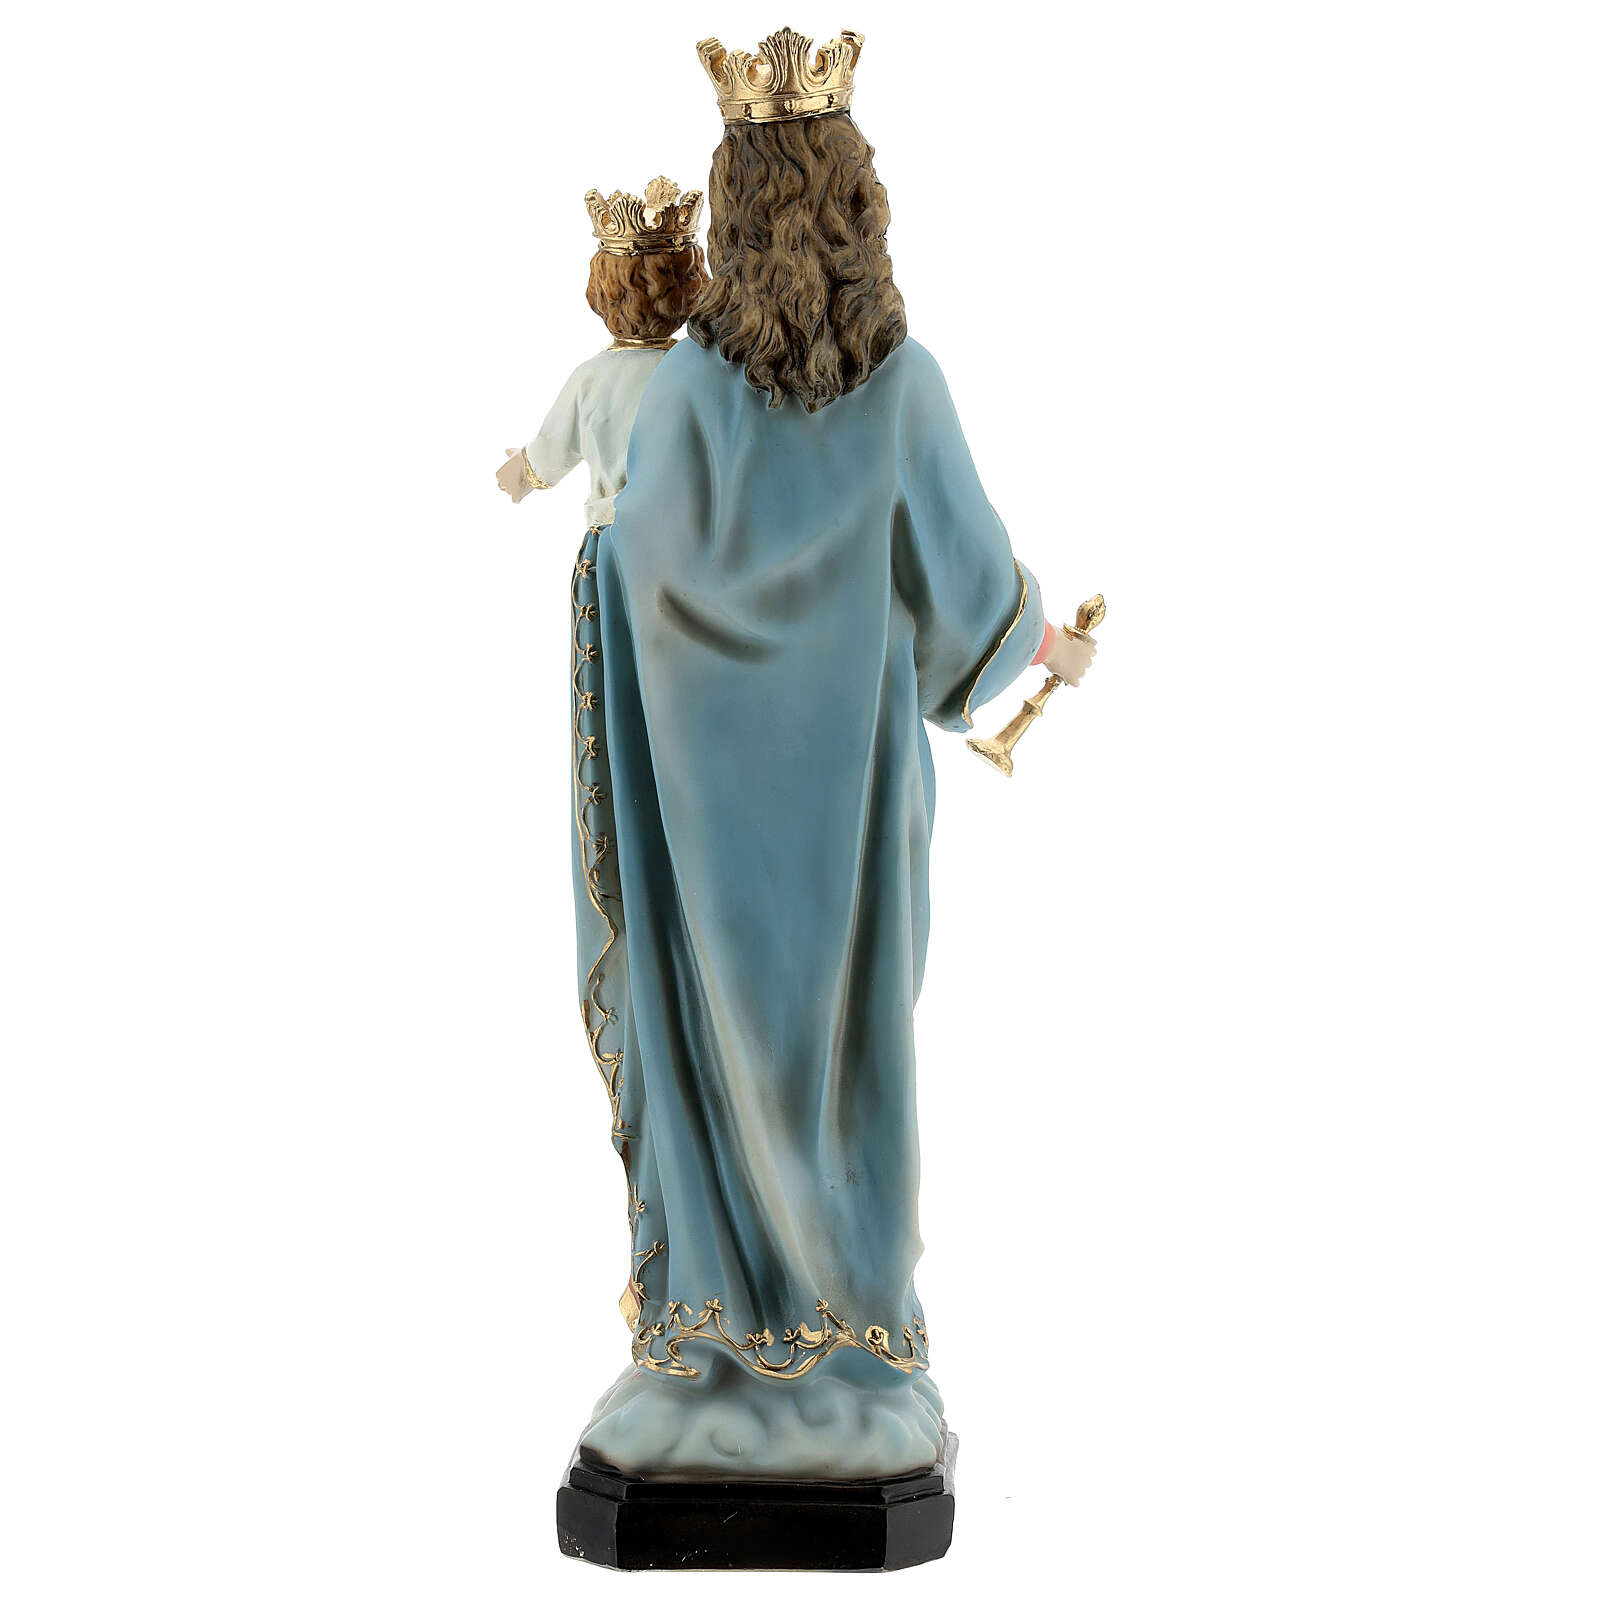 Statue of Our Lady of Perpetual Help with Child scepter resin 30 cm 4